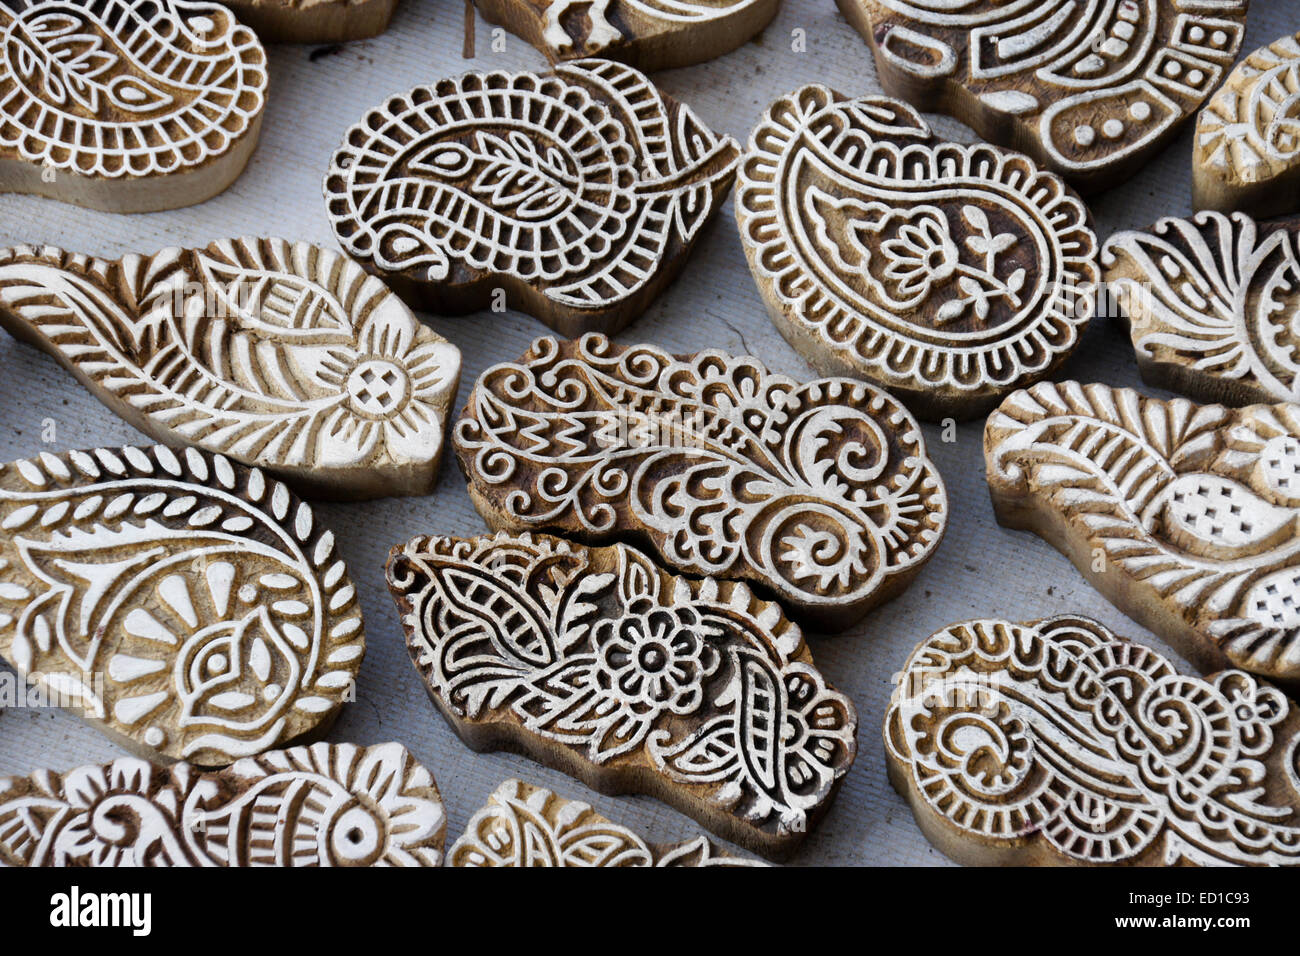 Carved wood henna stamps for sale in market, Ahmedabad